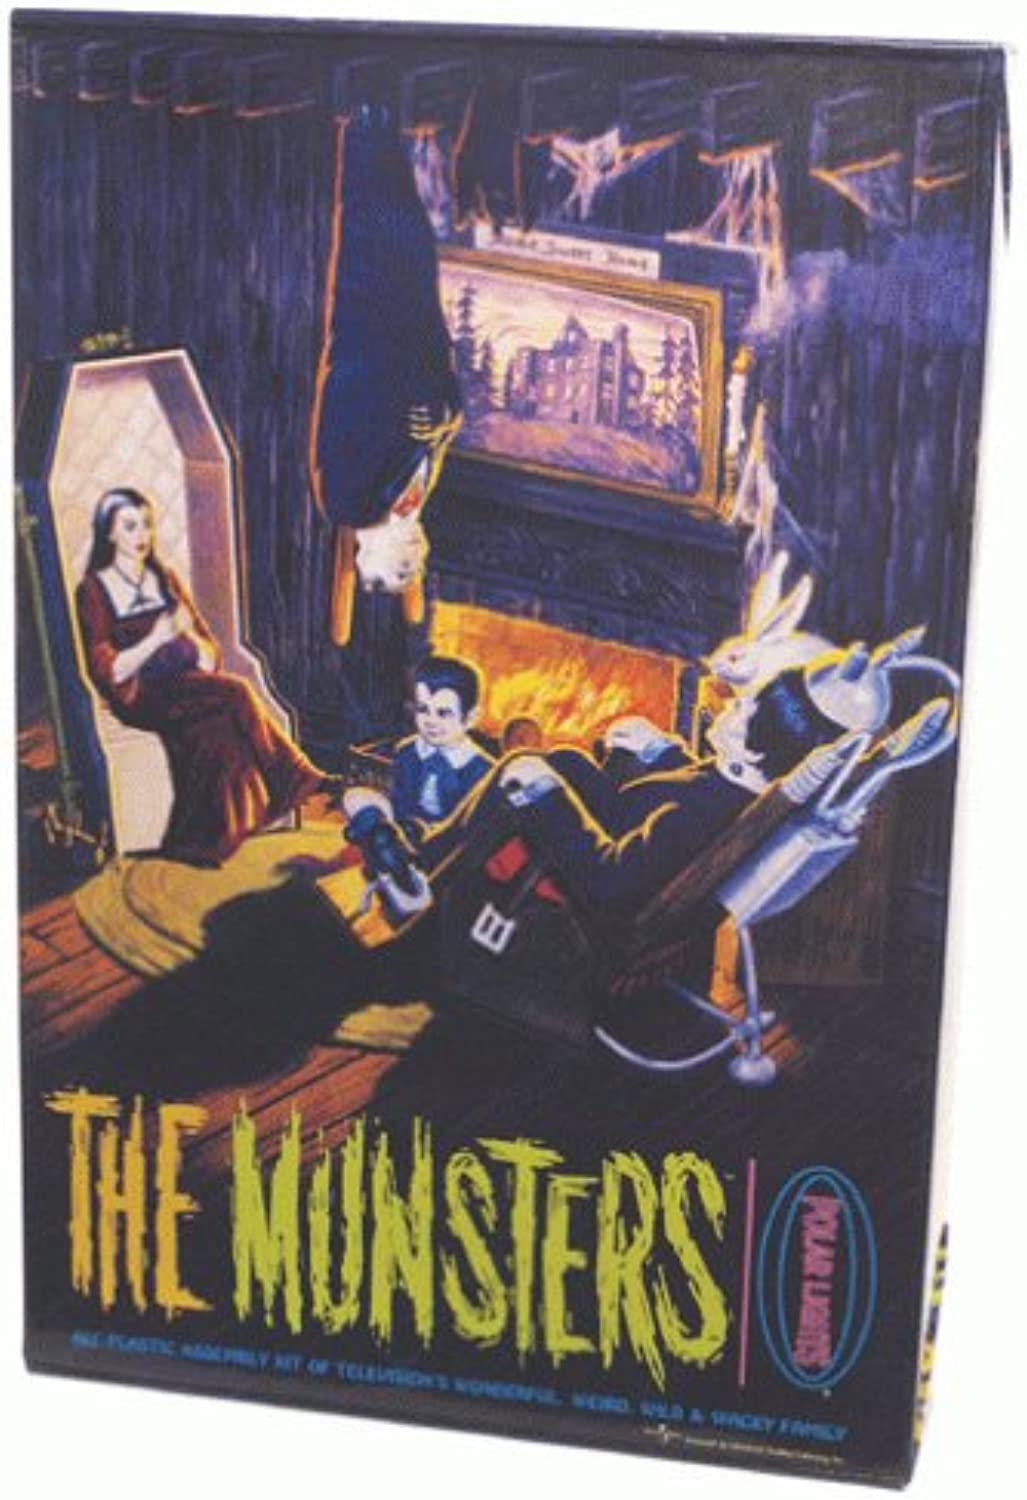 The Munsters Living Room Diorama Plastic modello Kit